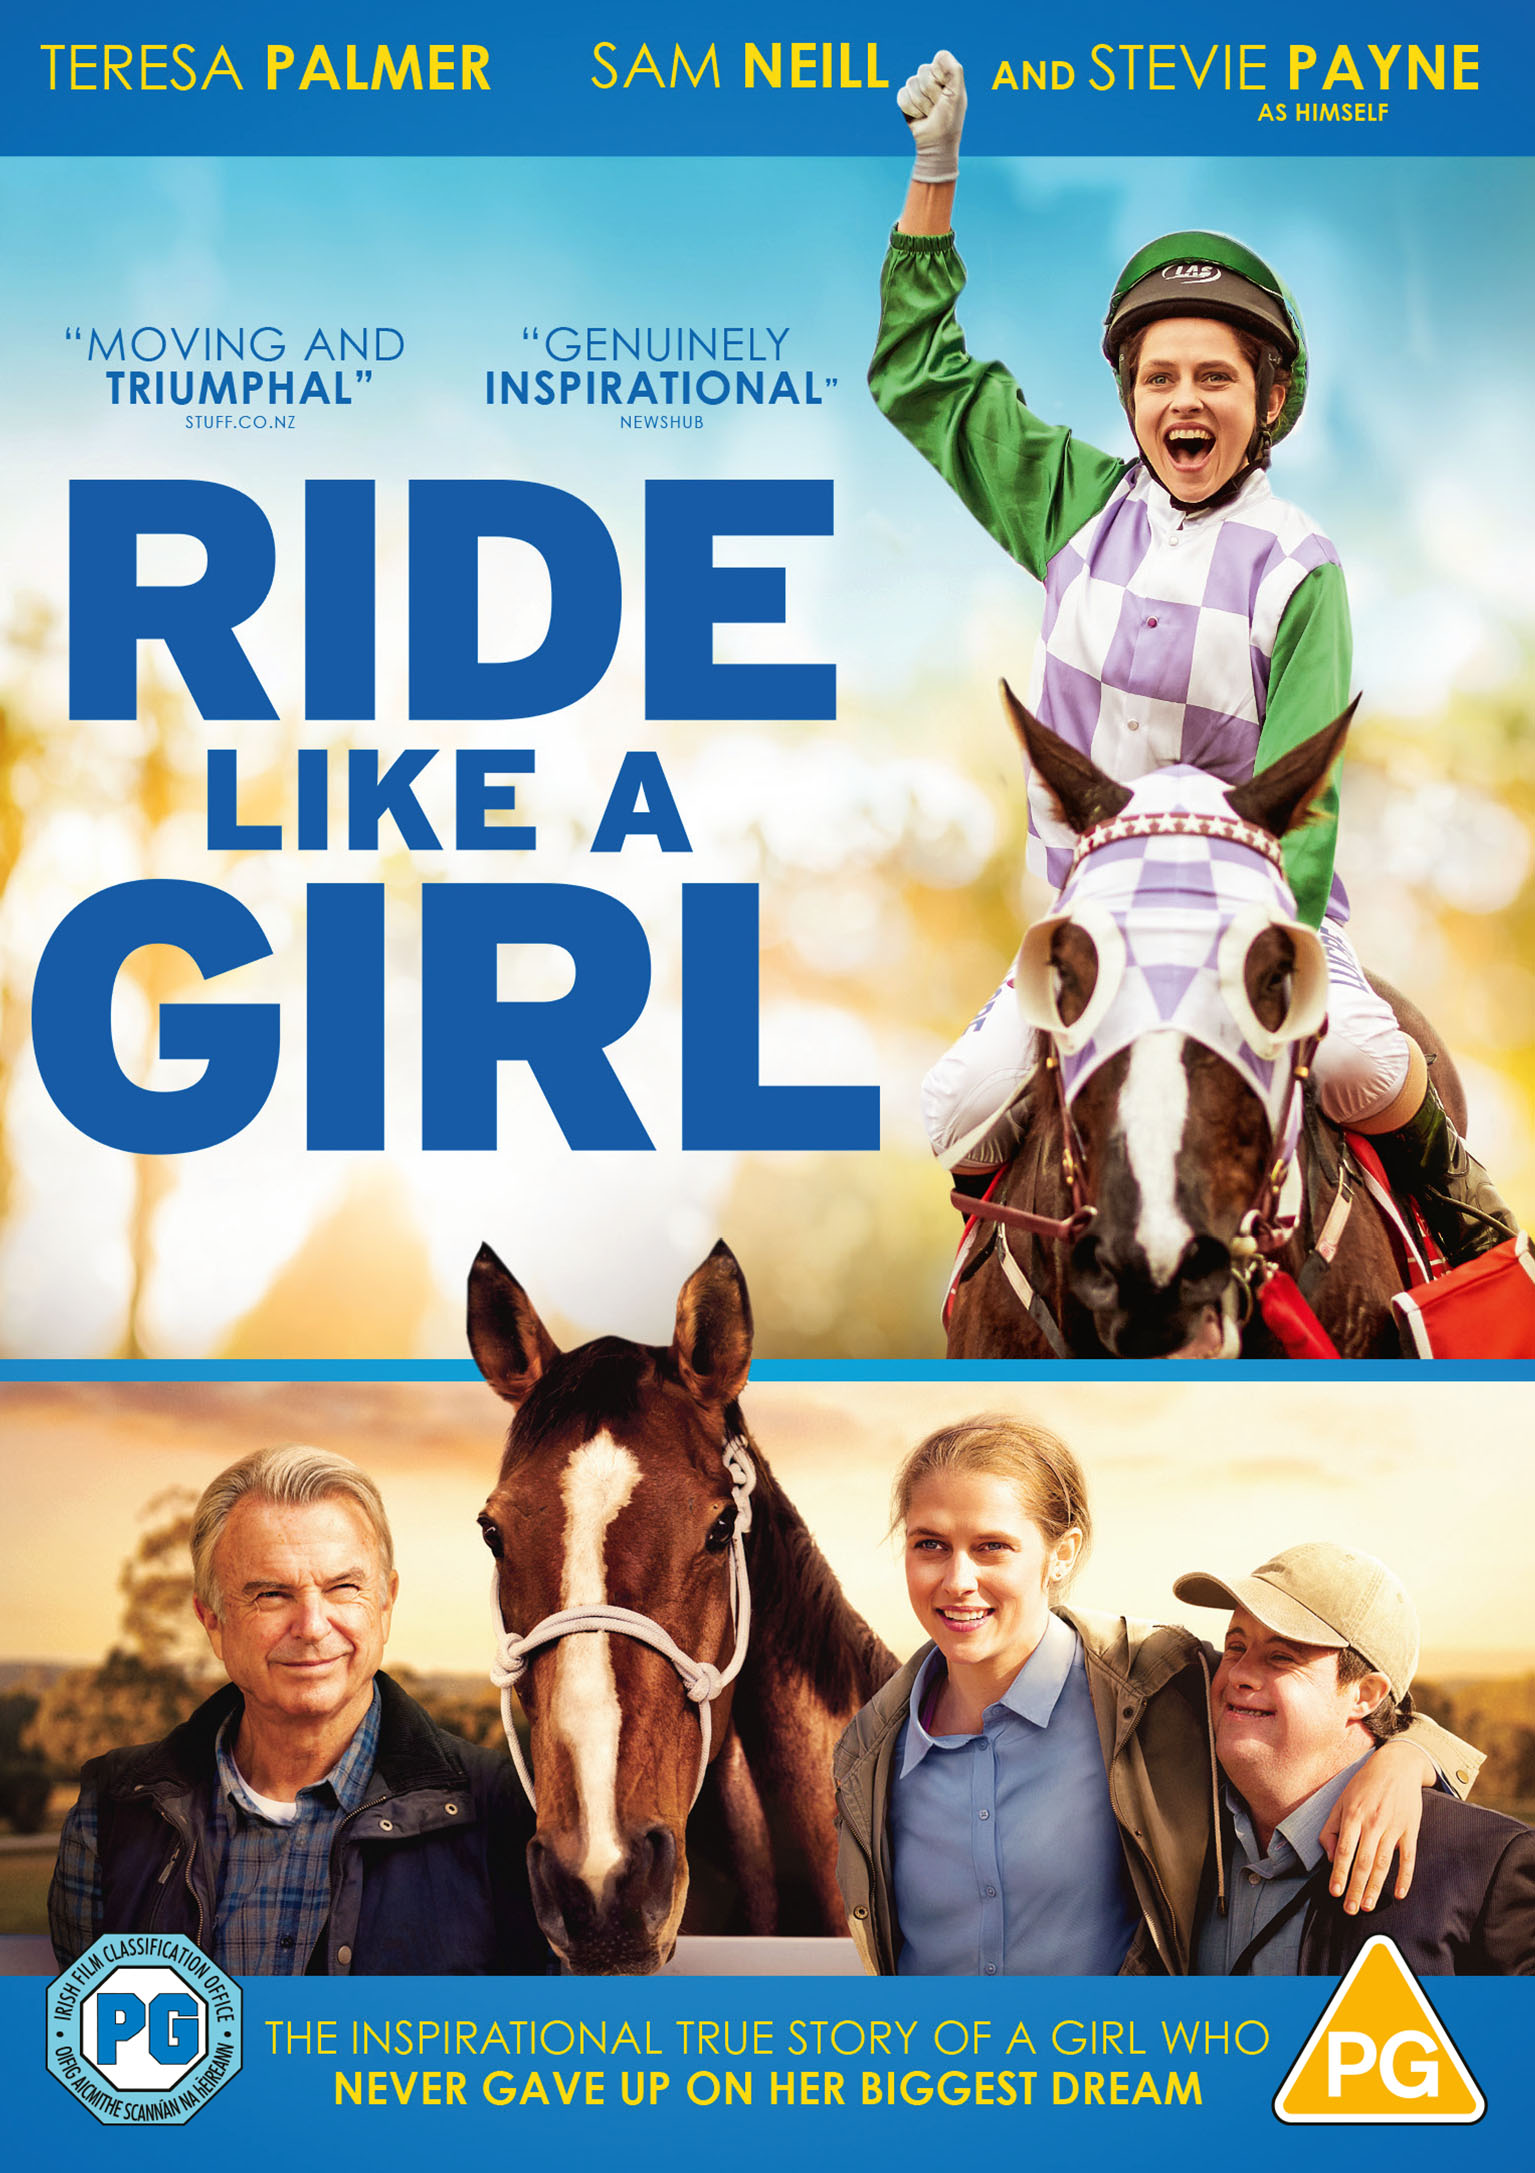 Lionsgate Ride Like A Girl DVD cover